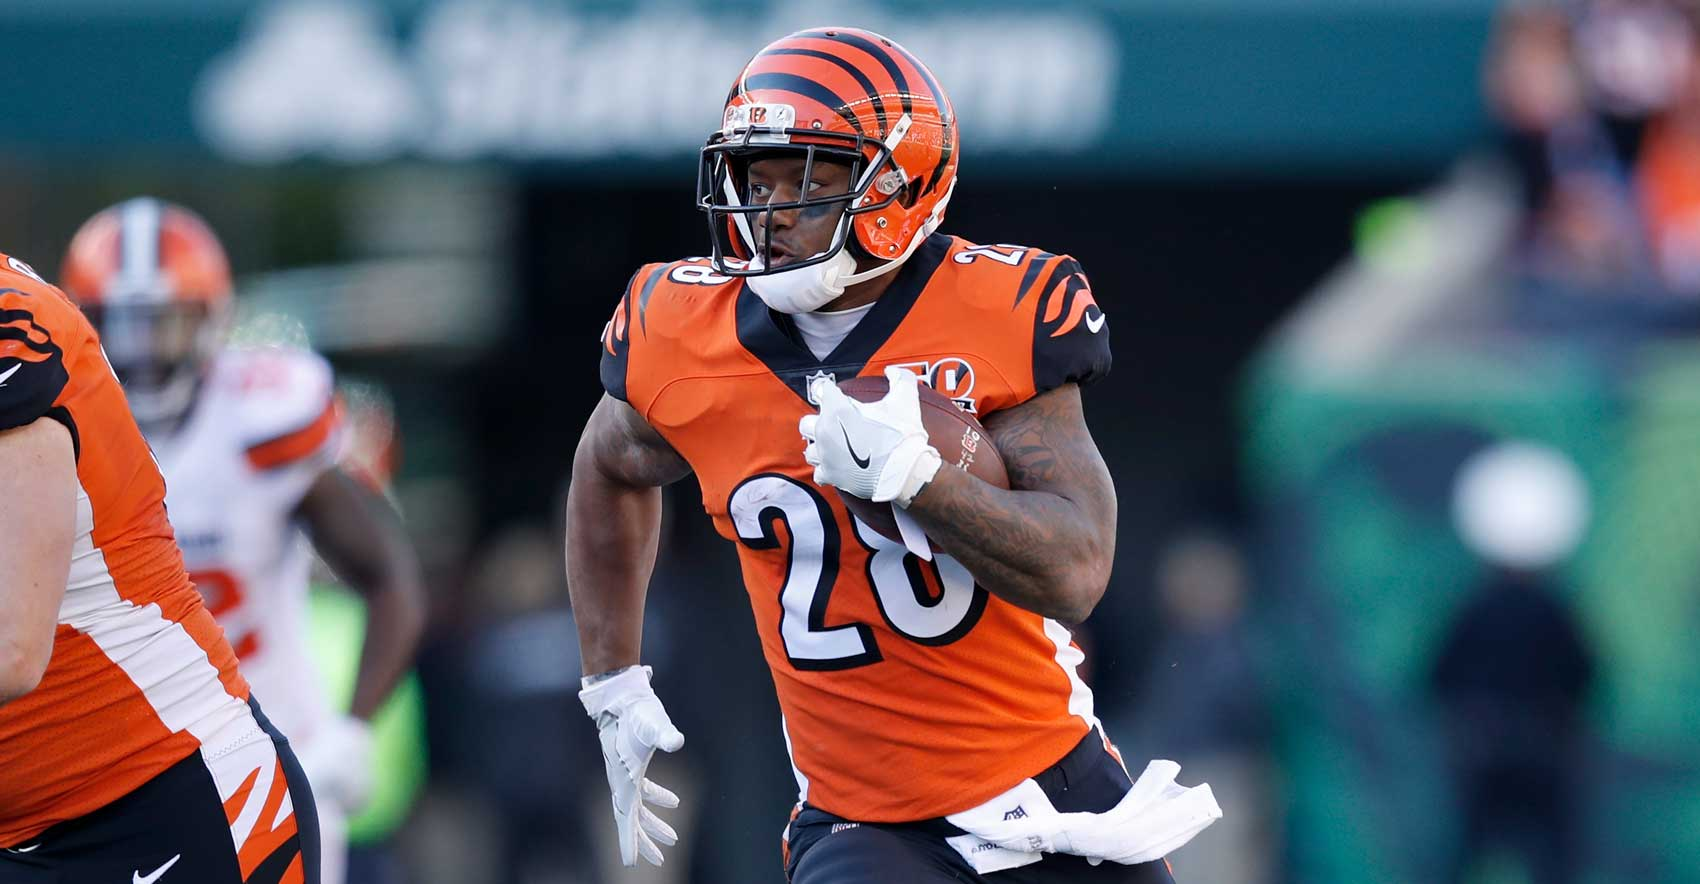 REAL Preseason Takeaways + RB Rankings, Jason's Mixon Love